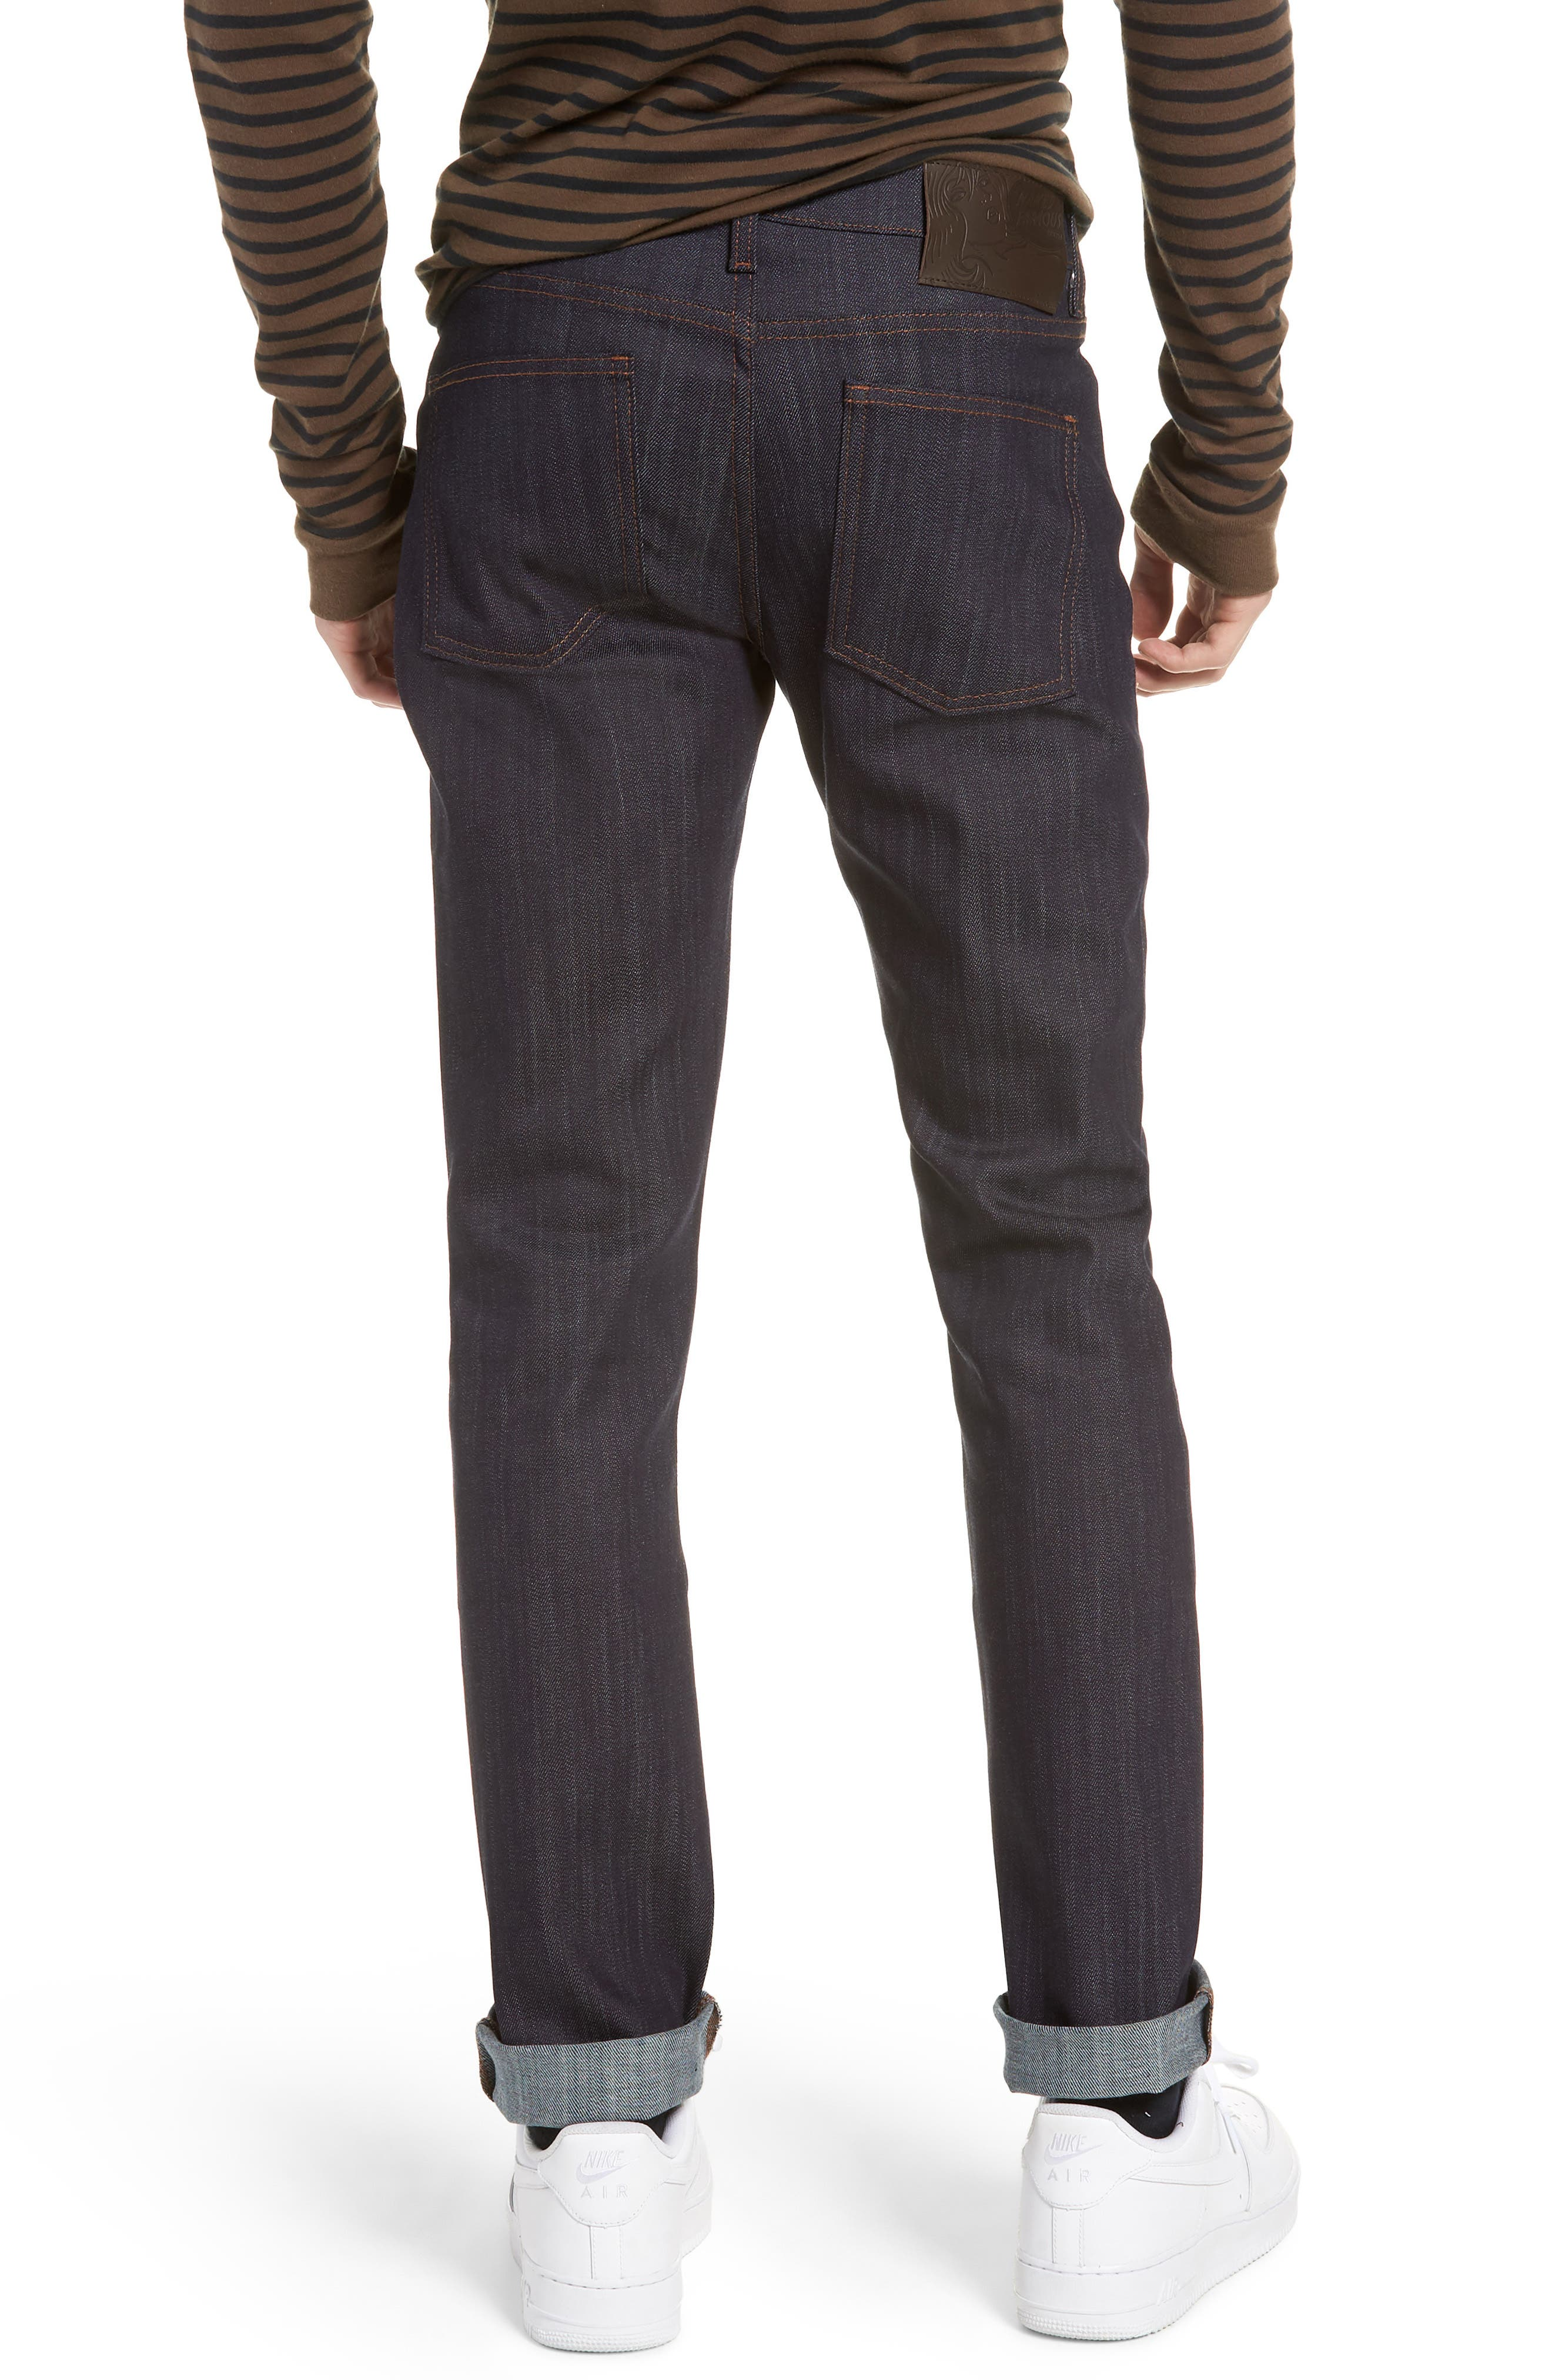 Naked & Famous Super Skinny Guy Skinny Fit Jeans,                             Alternate thumbnail 2, color,                             Indigo Power Stretch